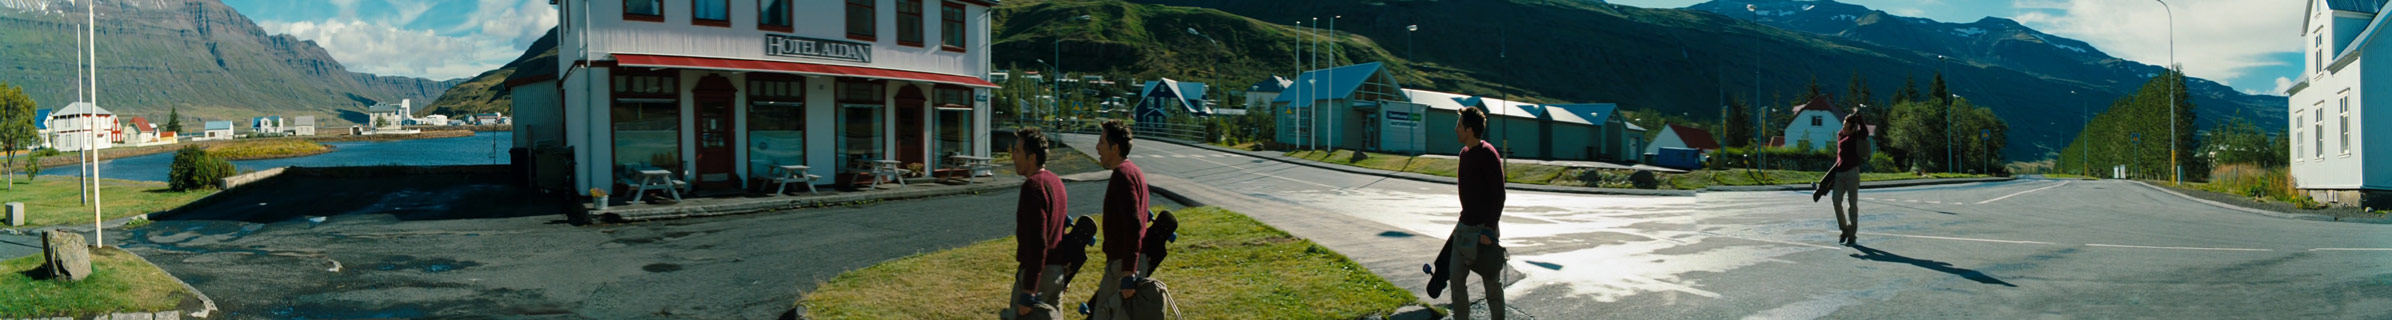 the-secret-life-of-walter-mitty_ben-stiller_abandoned-town_film-panoramas